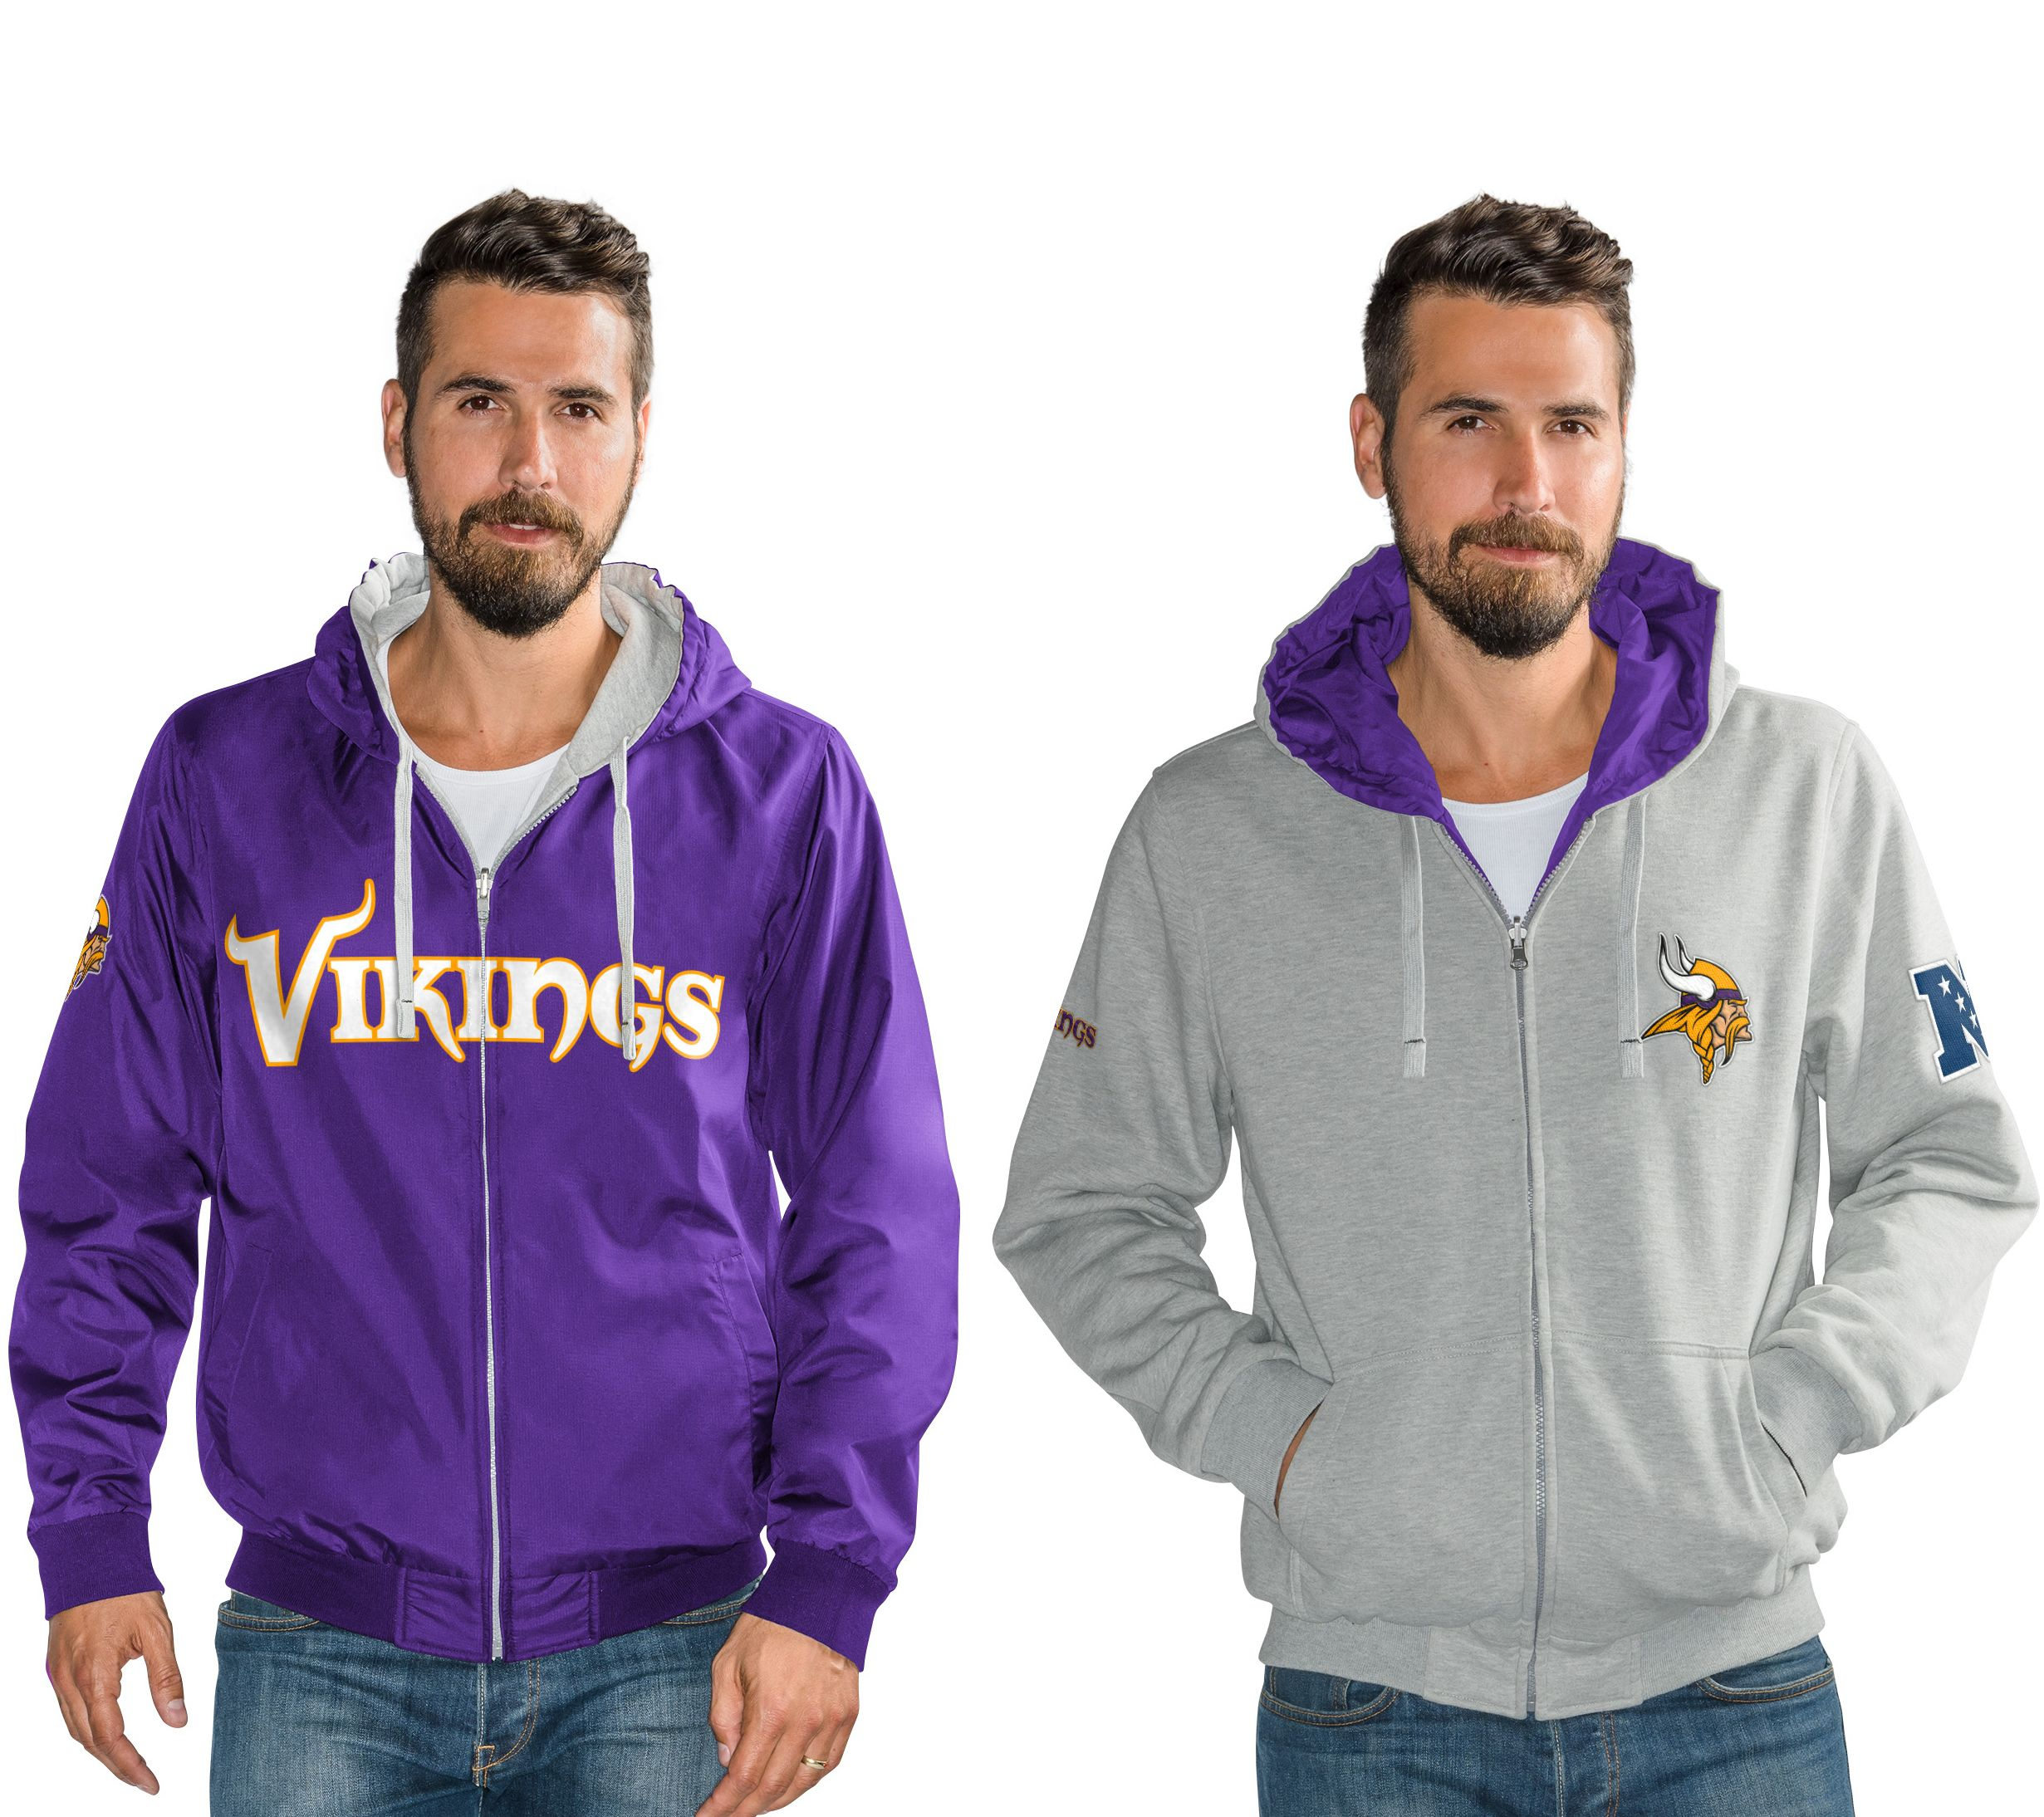 100% authentic 68864 8c245 NFL Reversible Hoodie and Jacket in Team Colors — QVC.com